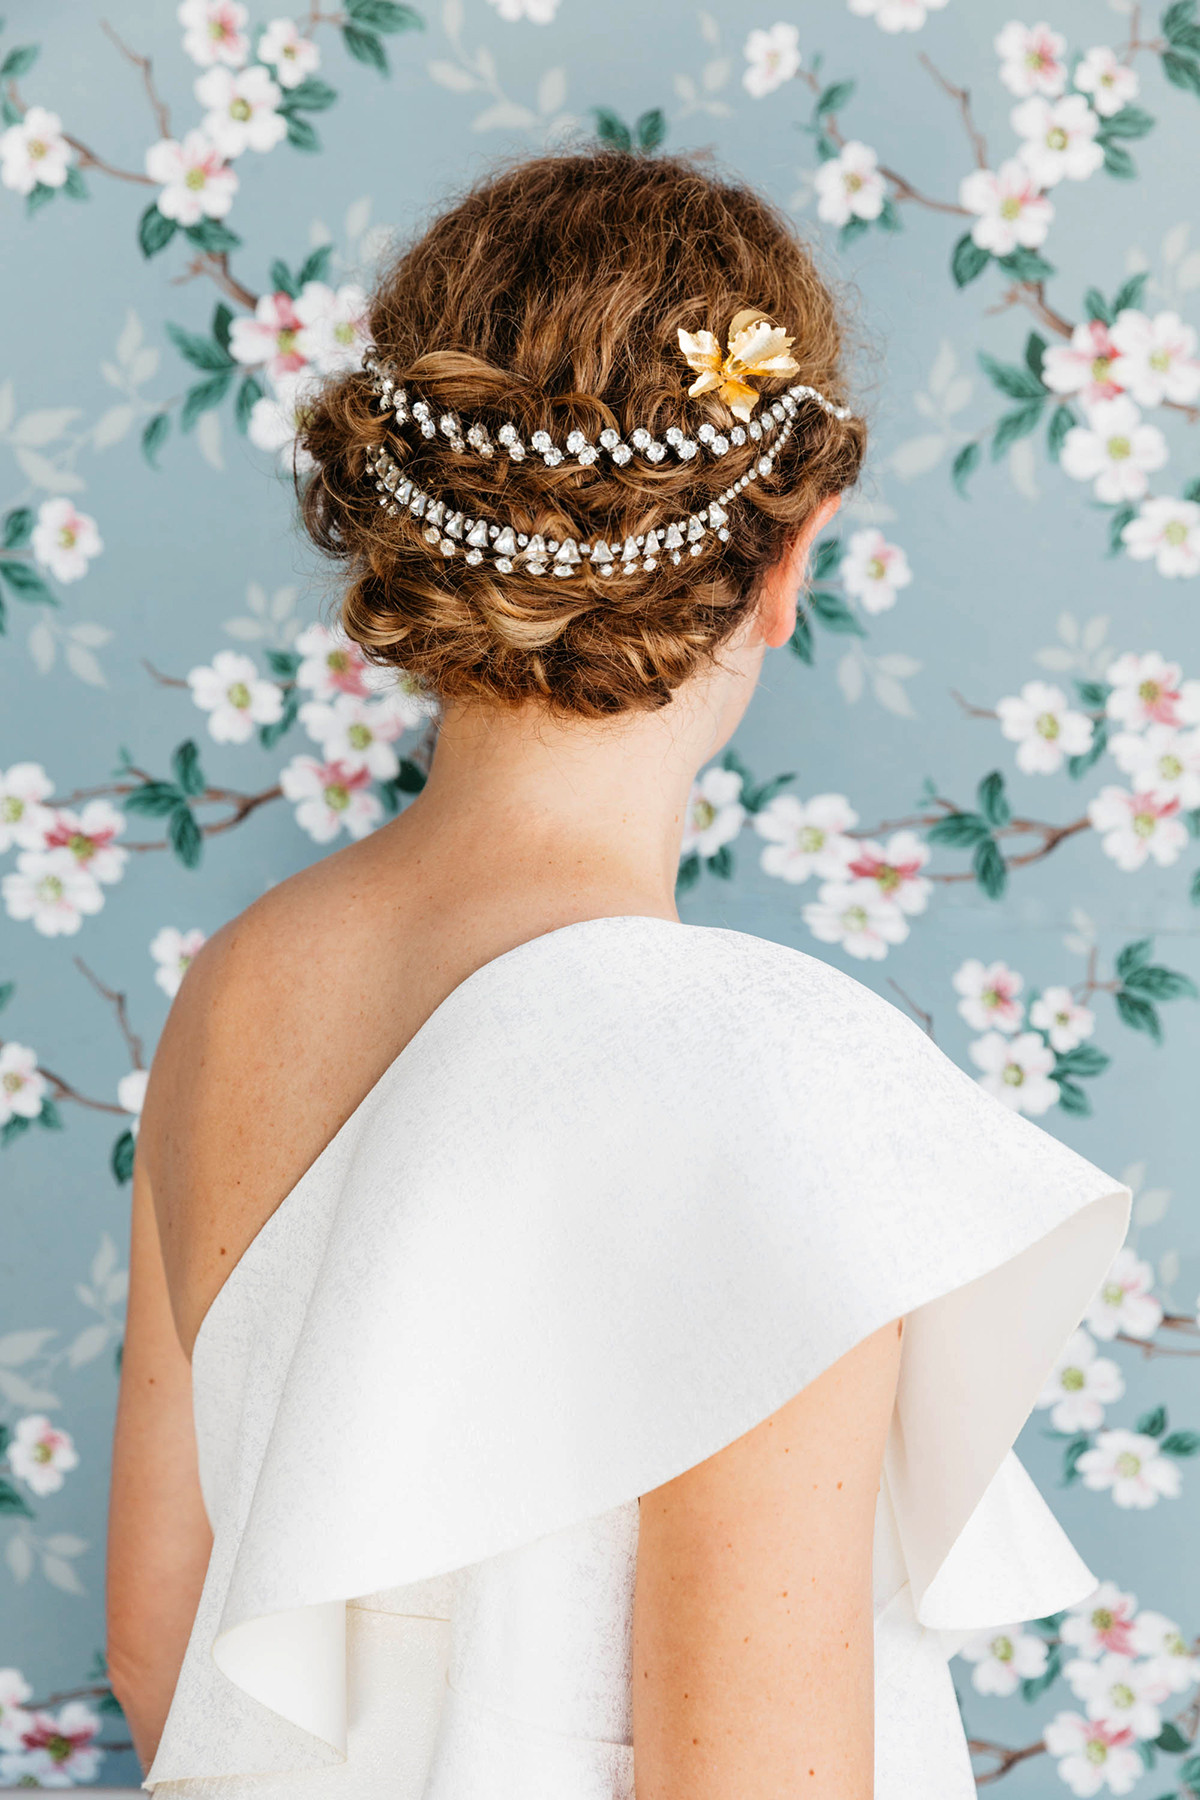 Best ideas about DIY Wedding Hair . Save or Pin DIY Hair Accessories With Vintage Jewelry – Honestly WTF Now.